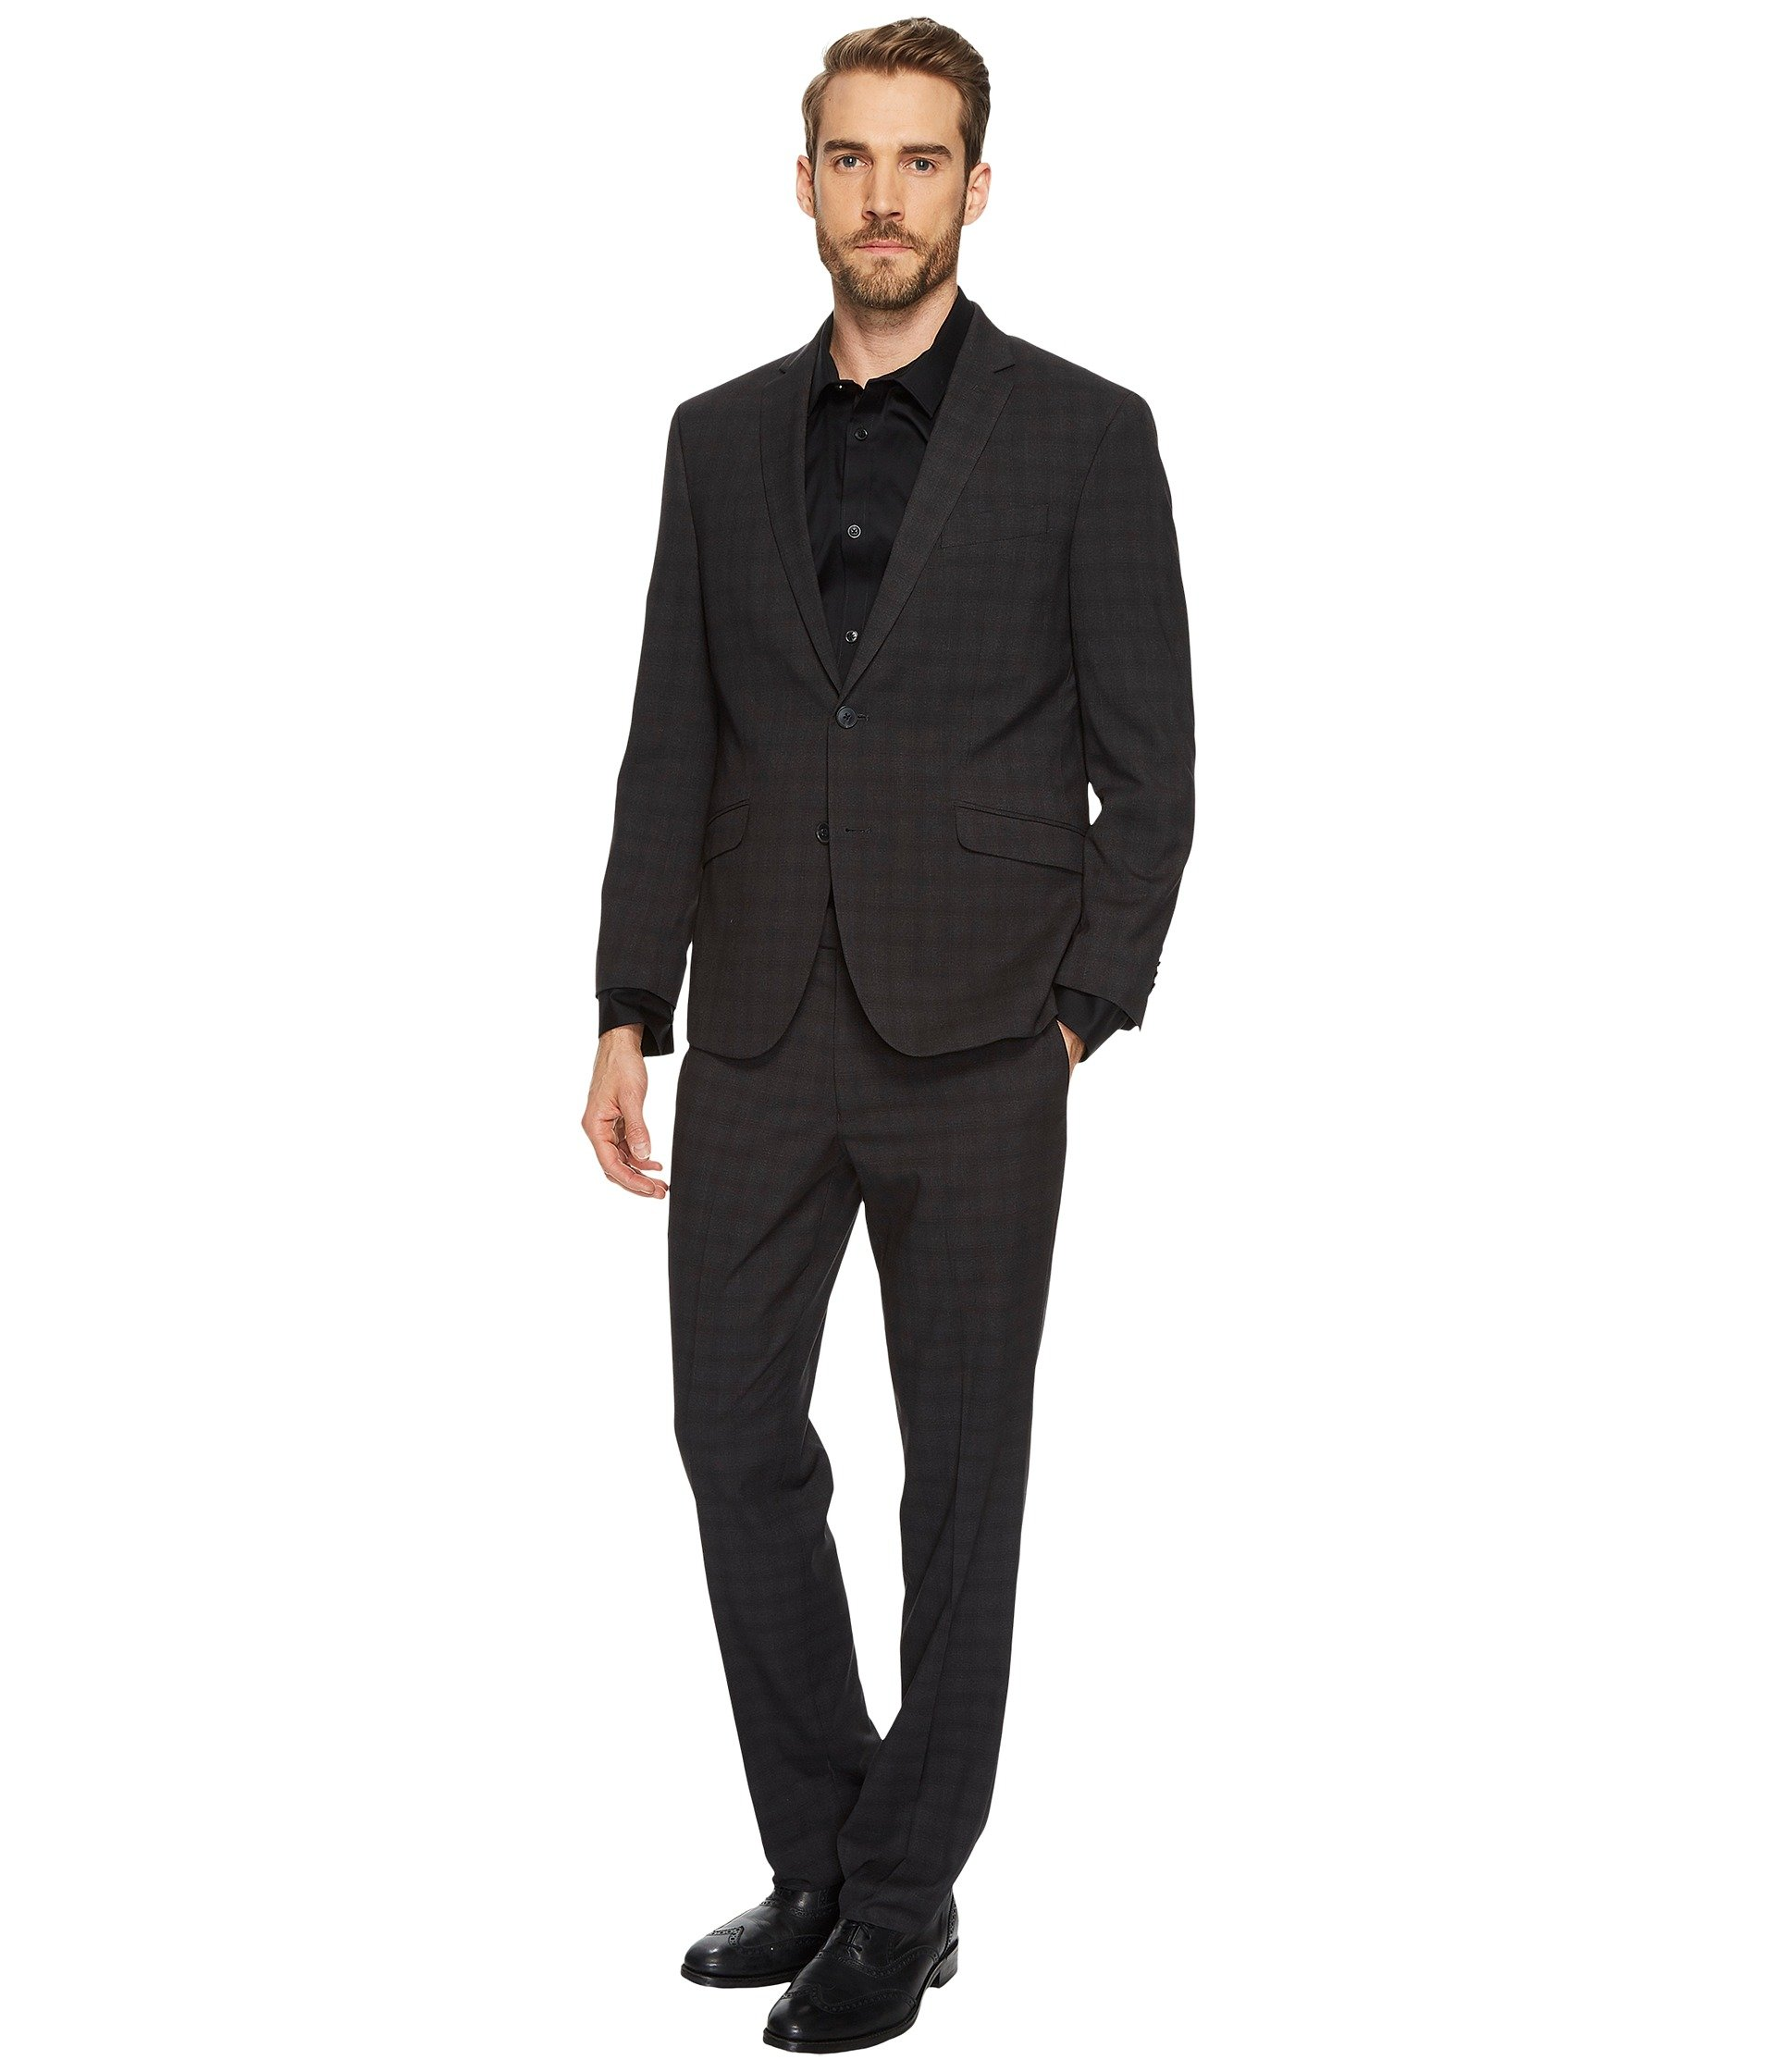 Vestido para Hombre Kenneth Cole Reaction Stretch Slim Fit Tonal Plaid Performance Suit  + Kenneth Cole Reaction en VeoyCompro.net